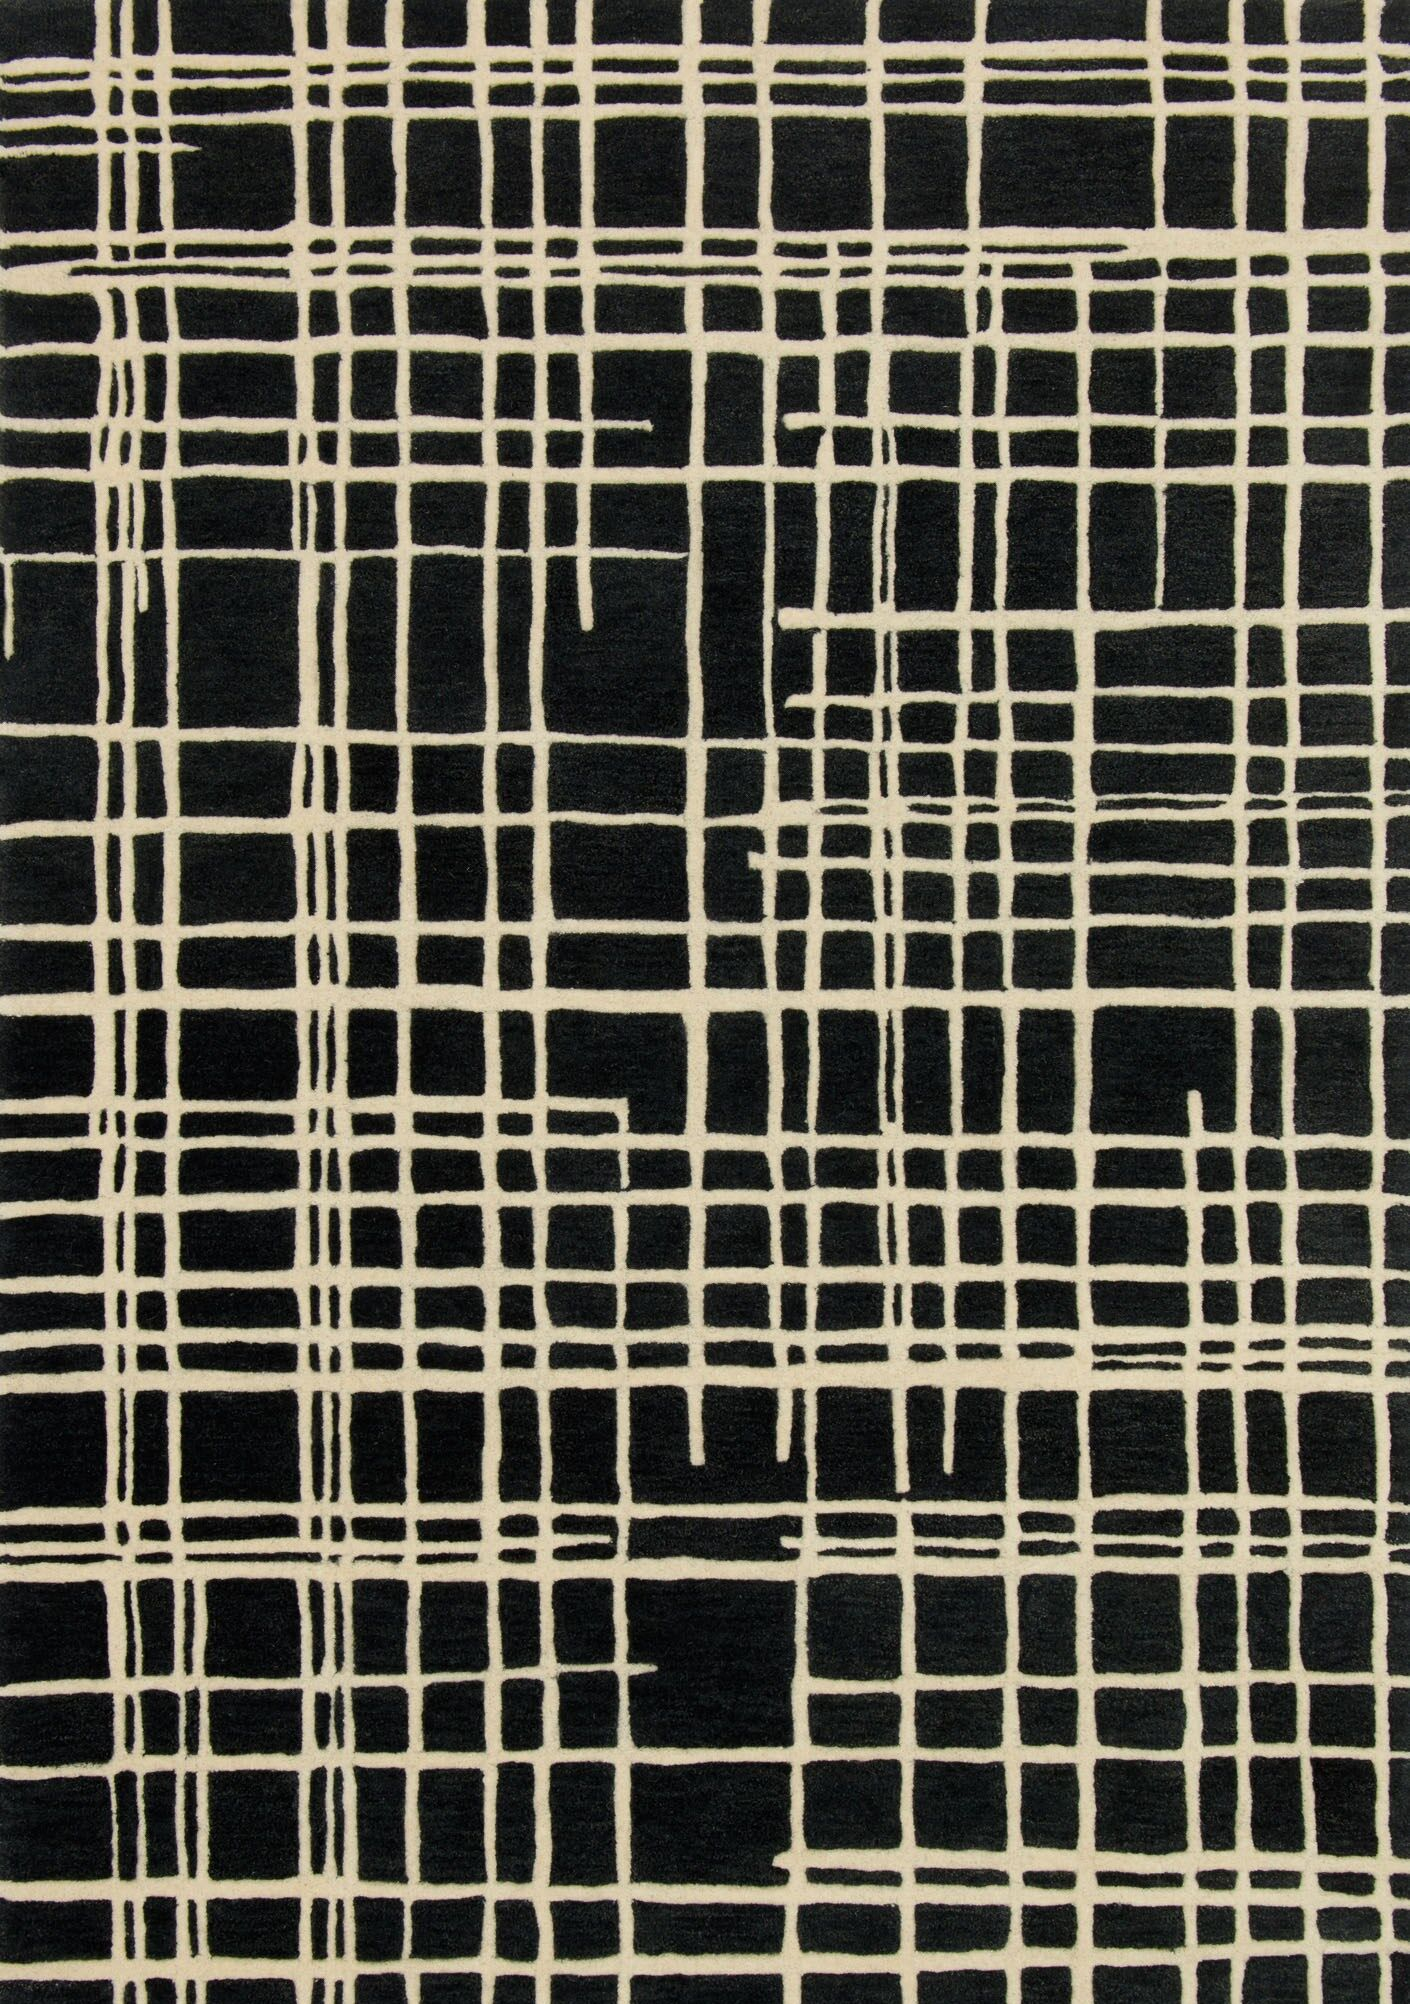 Mazon Hand-Tufted Black/Beige Area Rug Rug Size: Rectangle 3'6